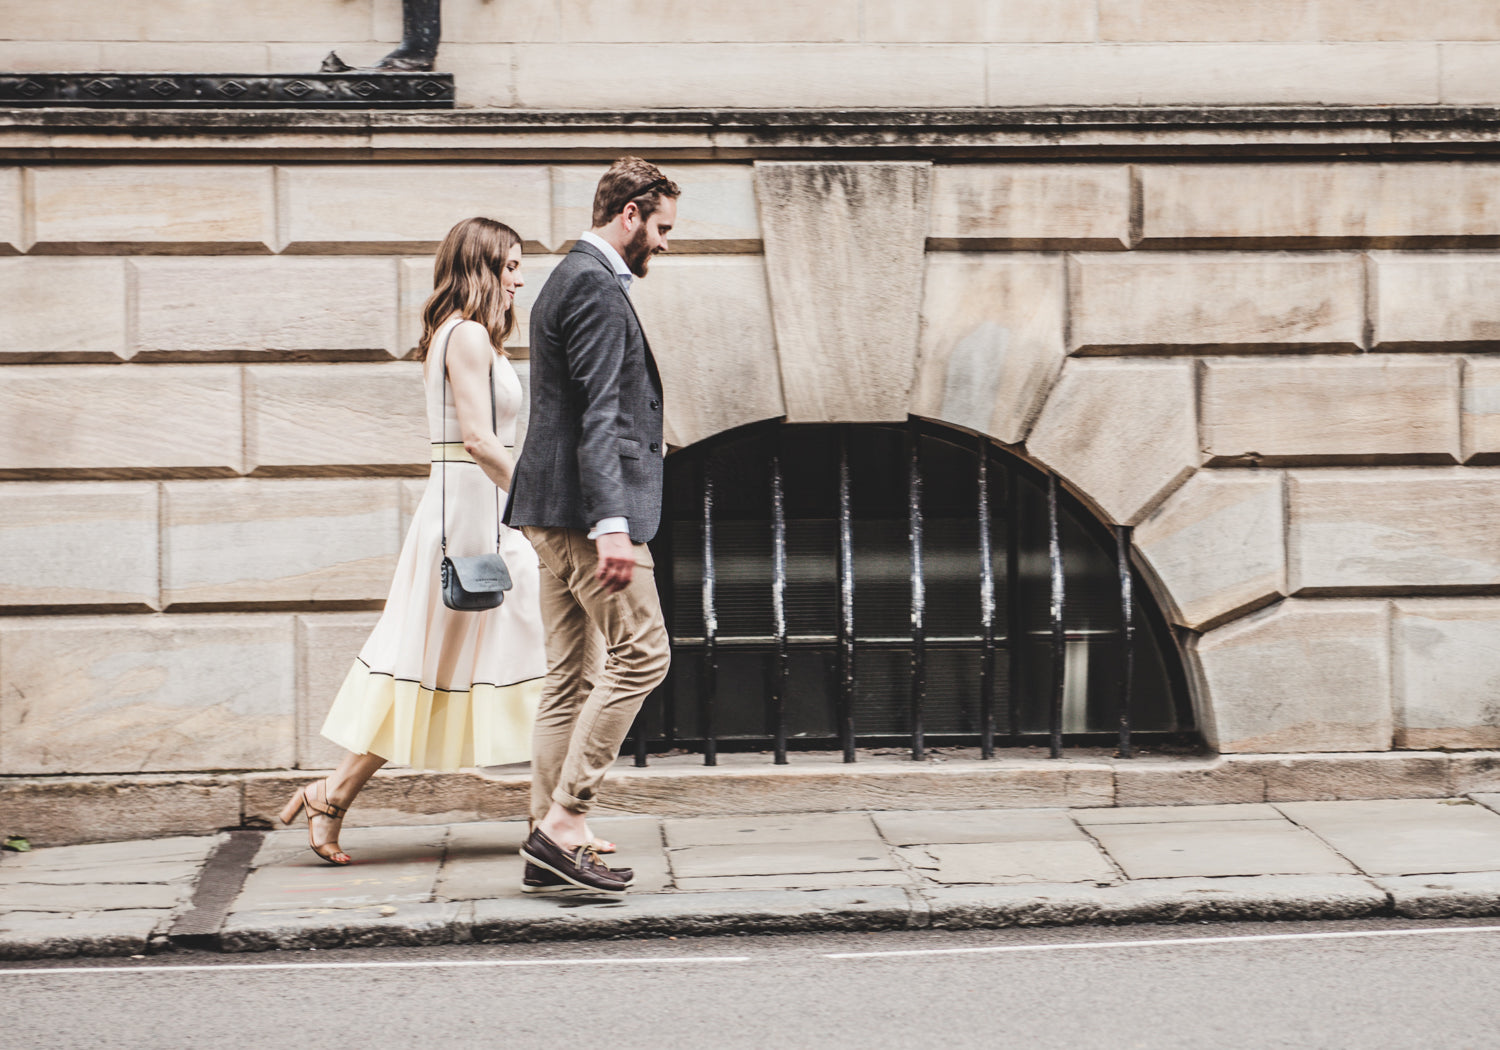 Couple walking on the sidewalk